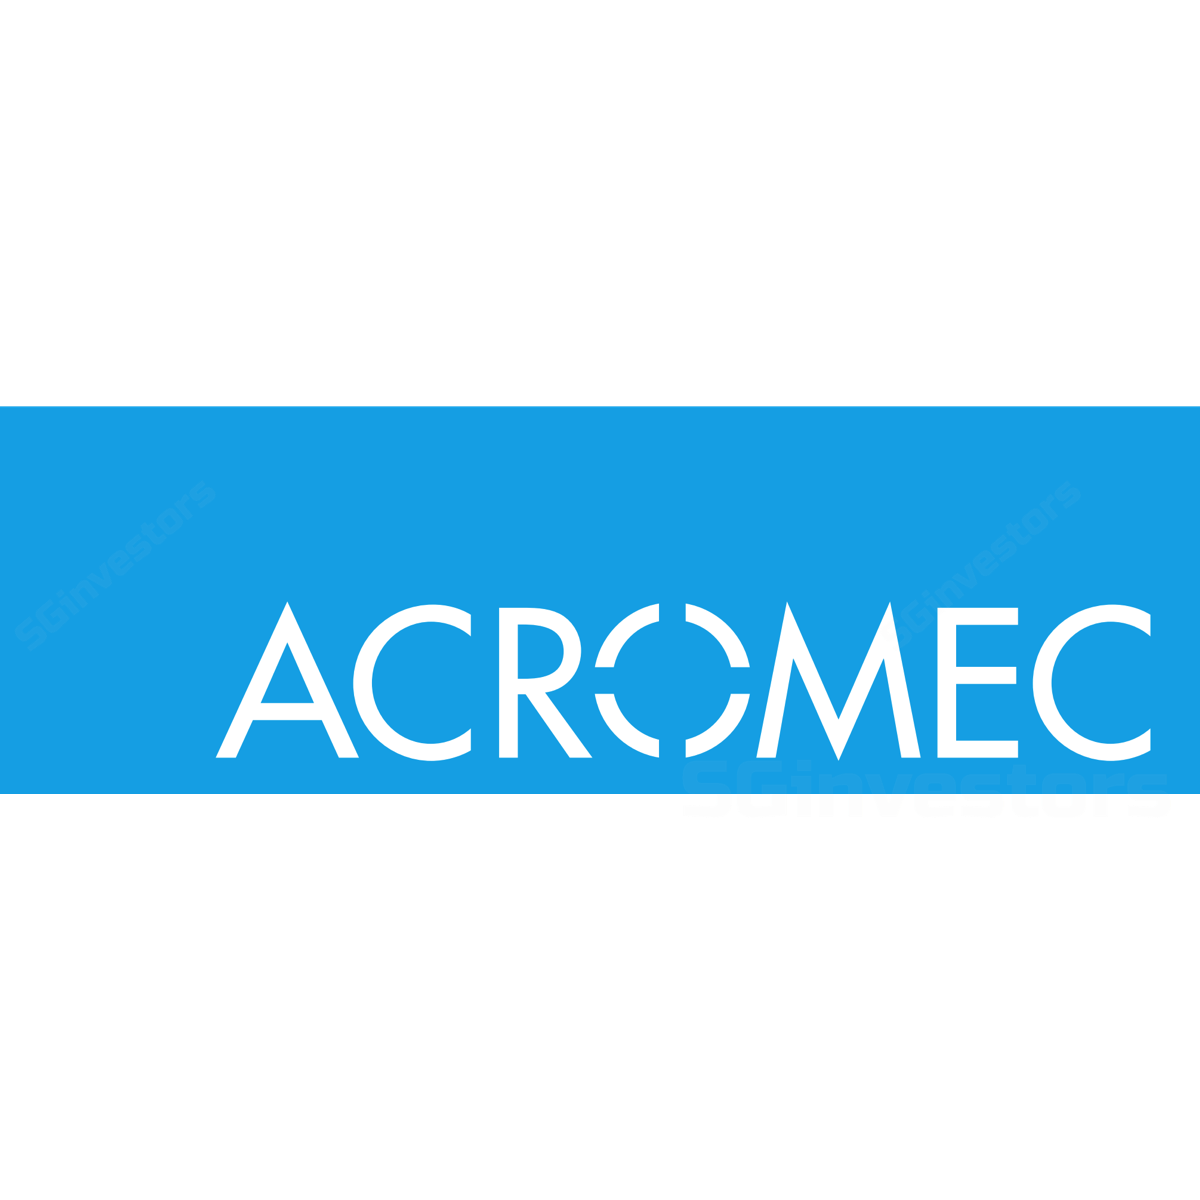 Acromec Limited - RHB Invest 2017-12-22: Cease Coverage